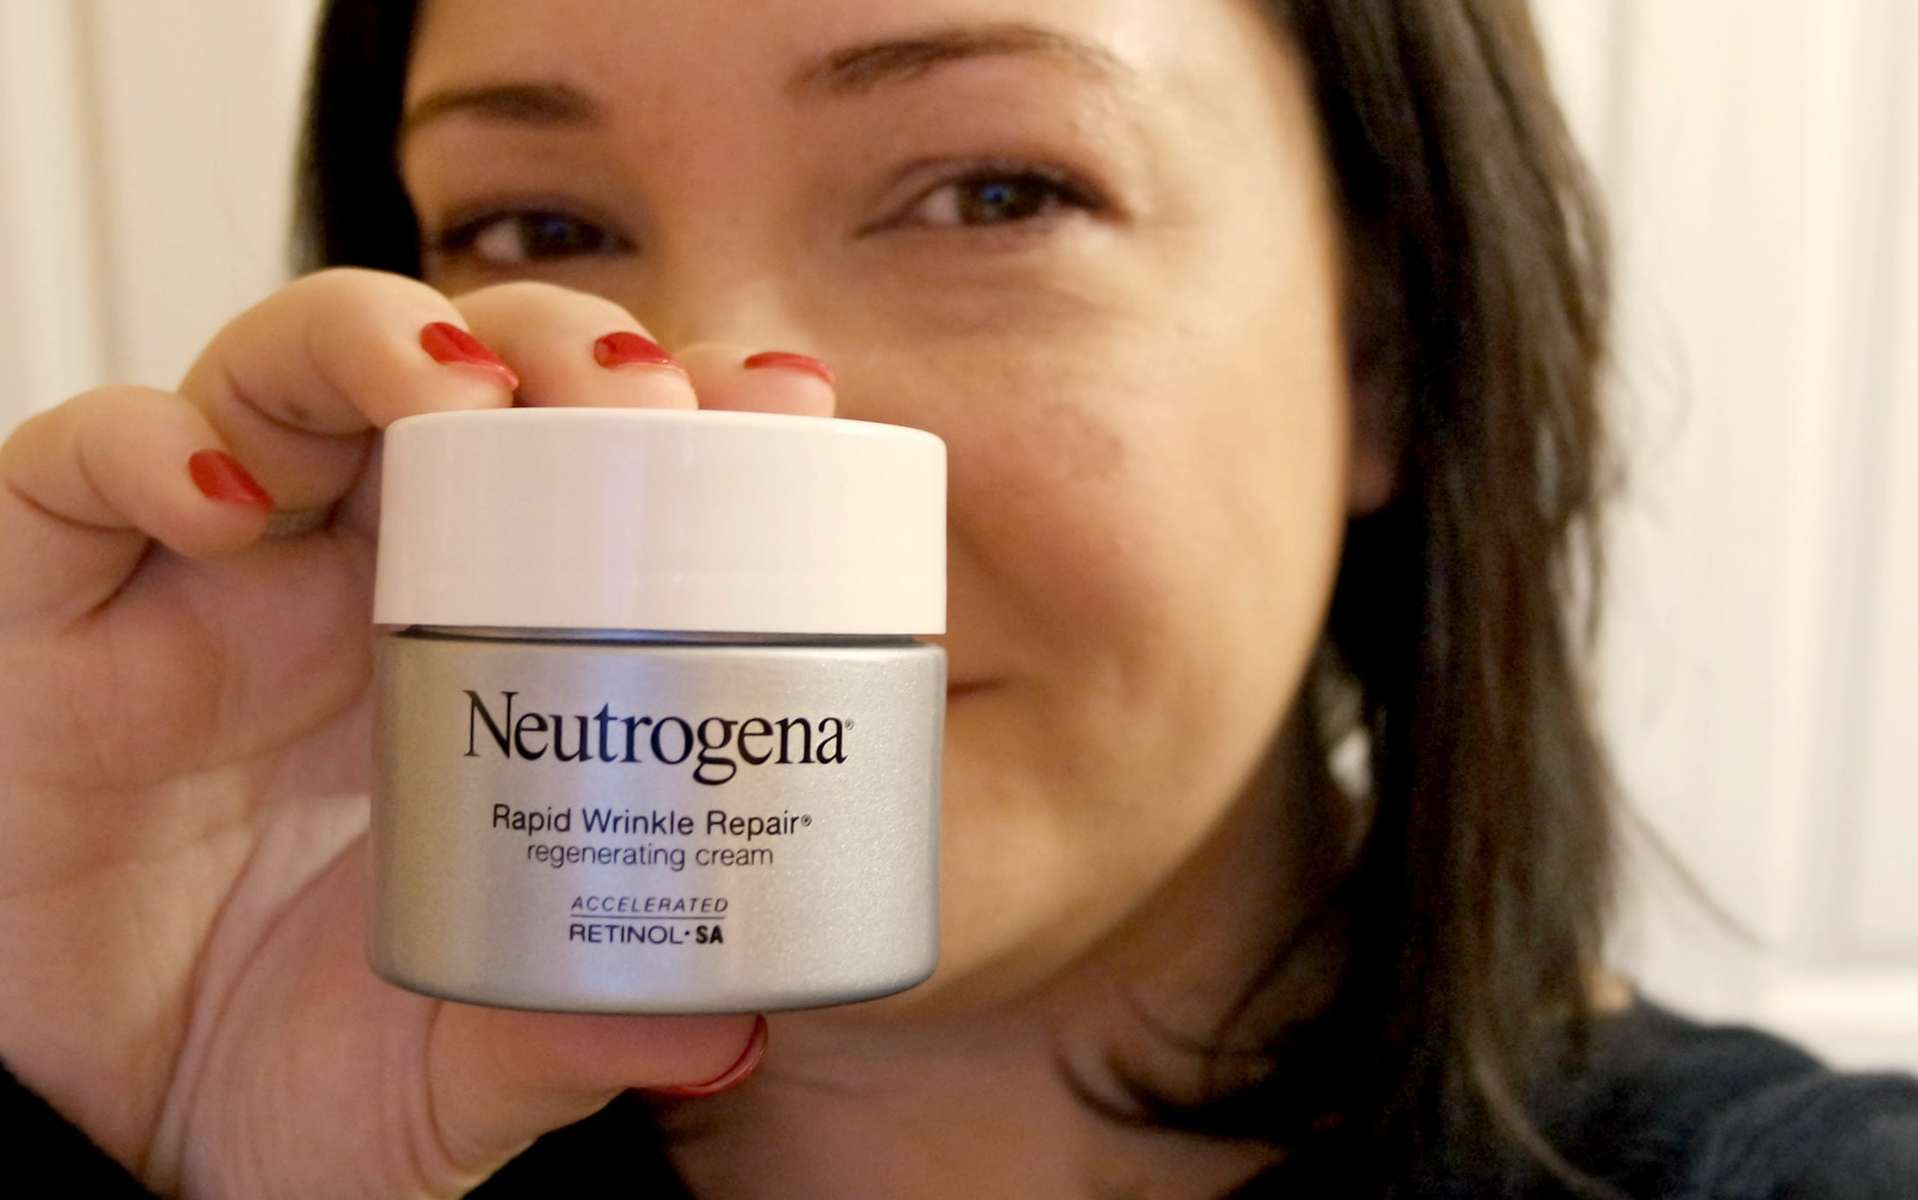 Neutrogena Rapid Wrinkle Repair Regenerating Cream Review